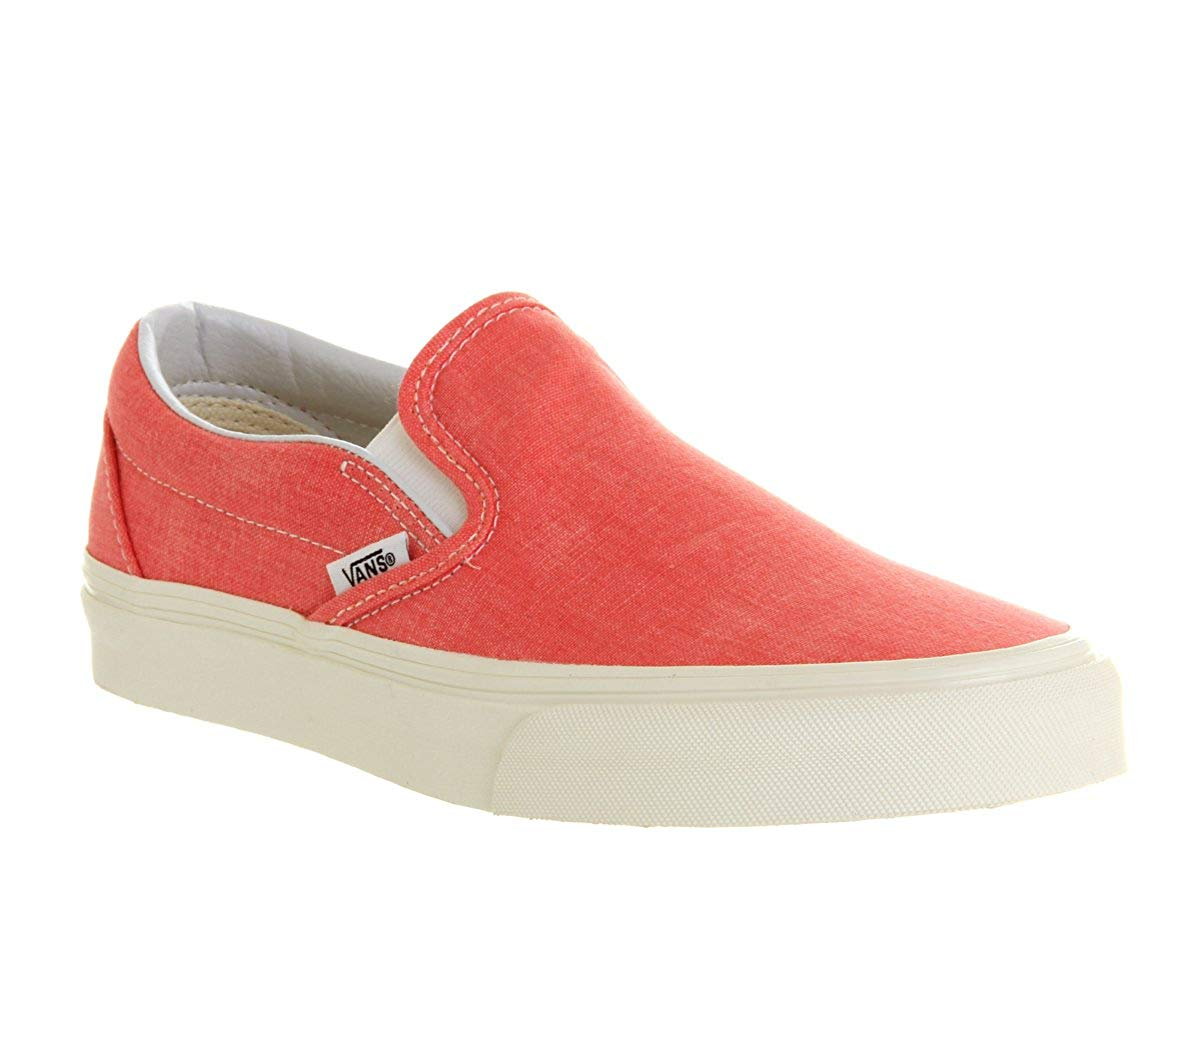 2ea75960f1 Get Quotations · Vans Unisex Classic Slip-On  (Washed) Hot Coral Men s 3.5